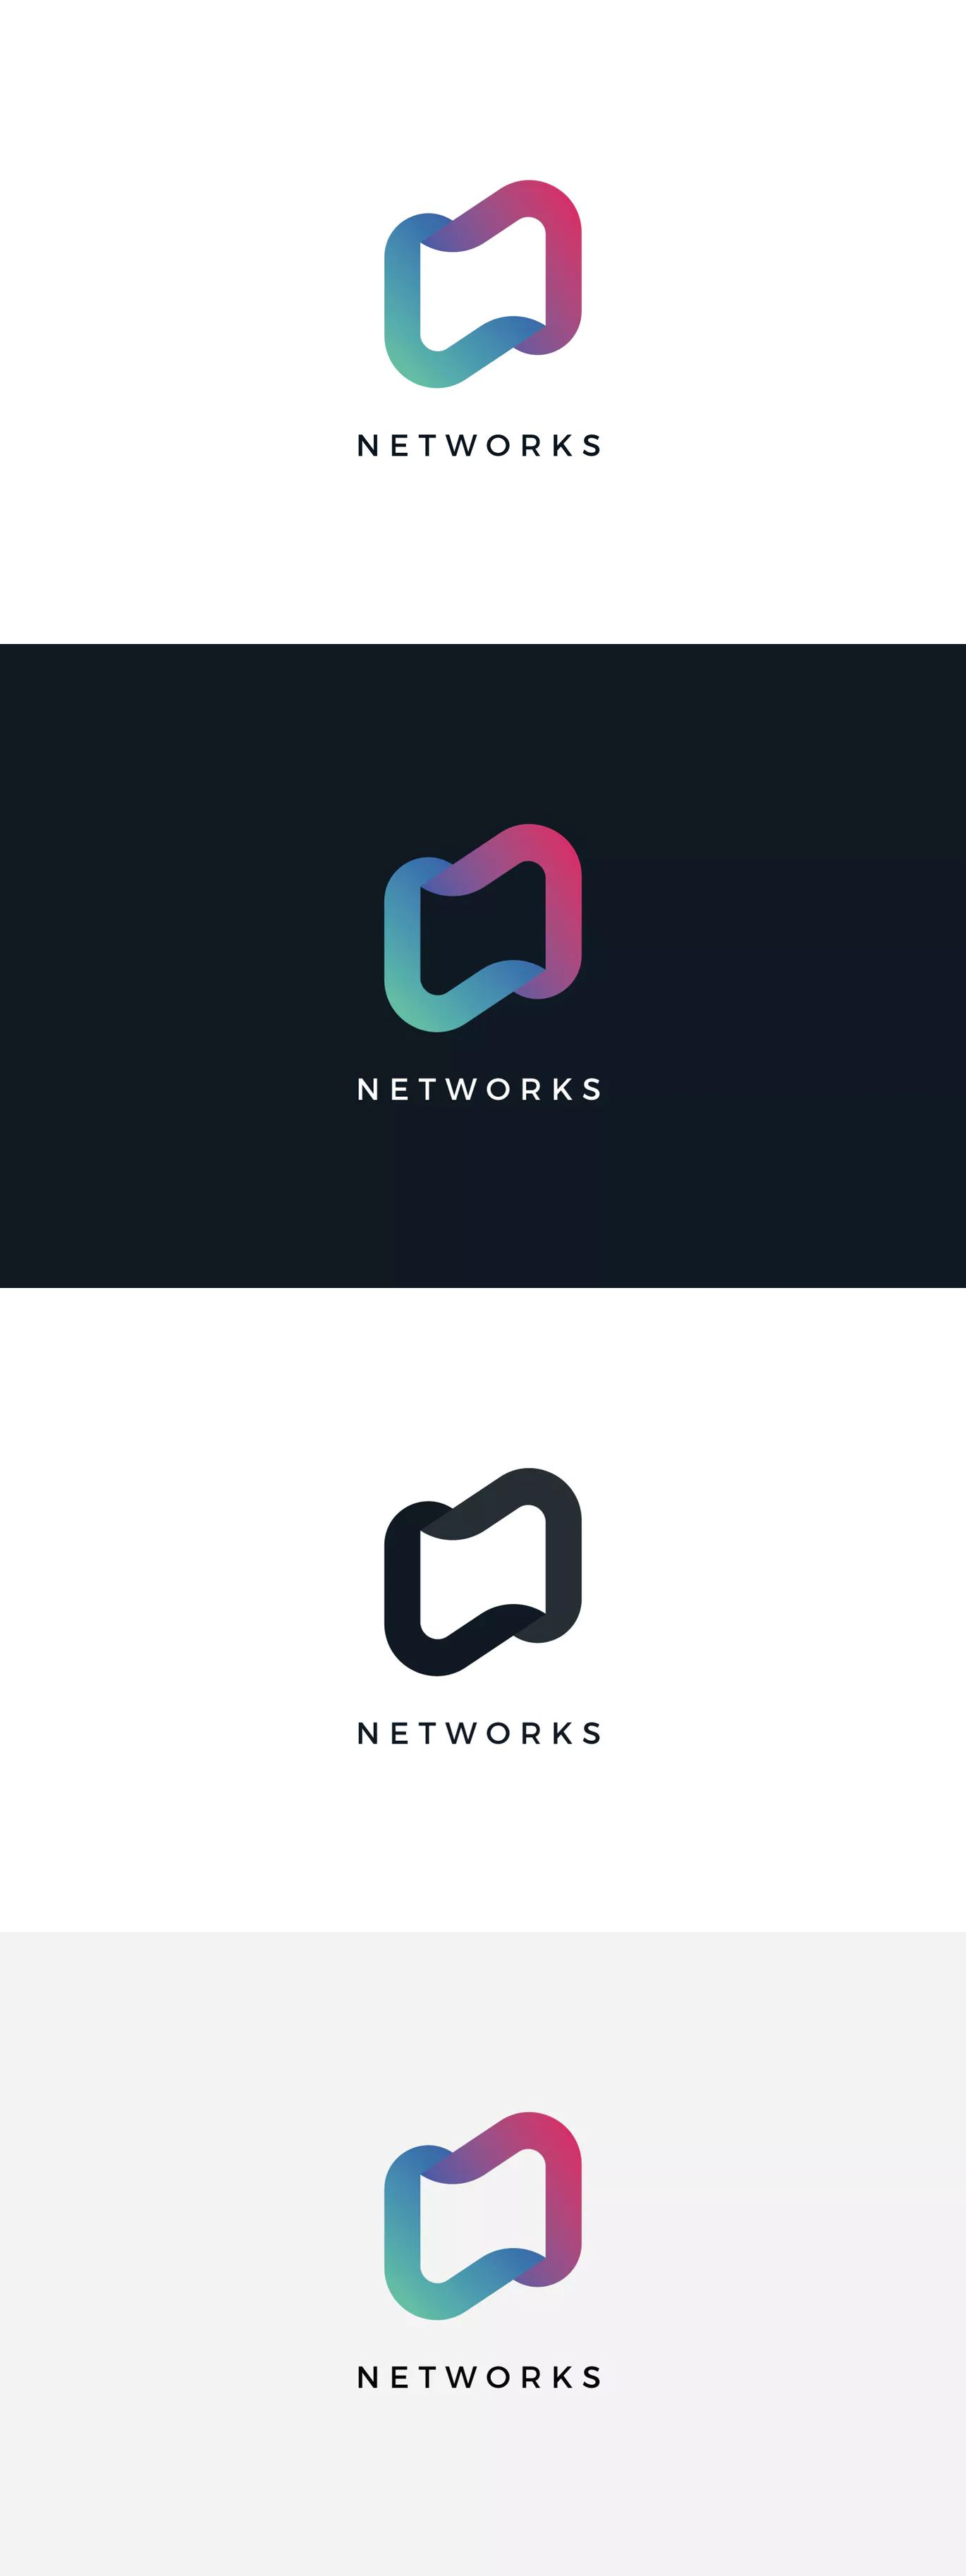 Logo Templates Ai - Awesome Graphic Library •